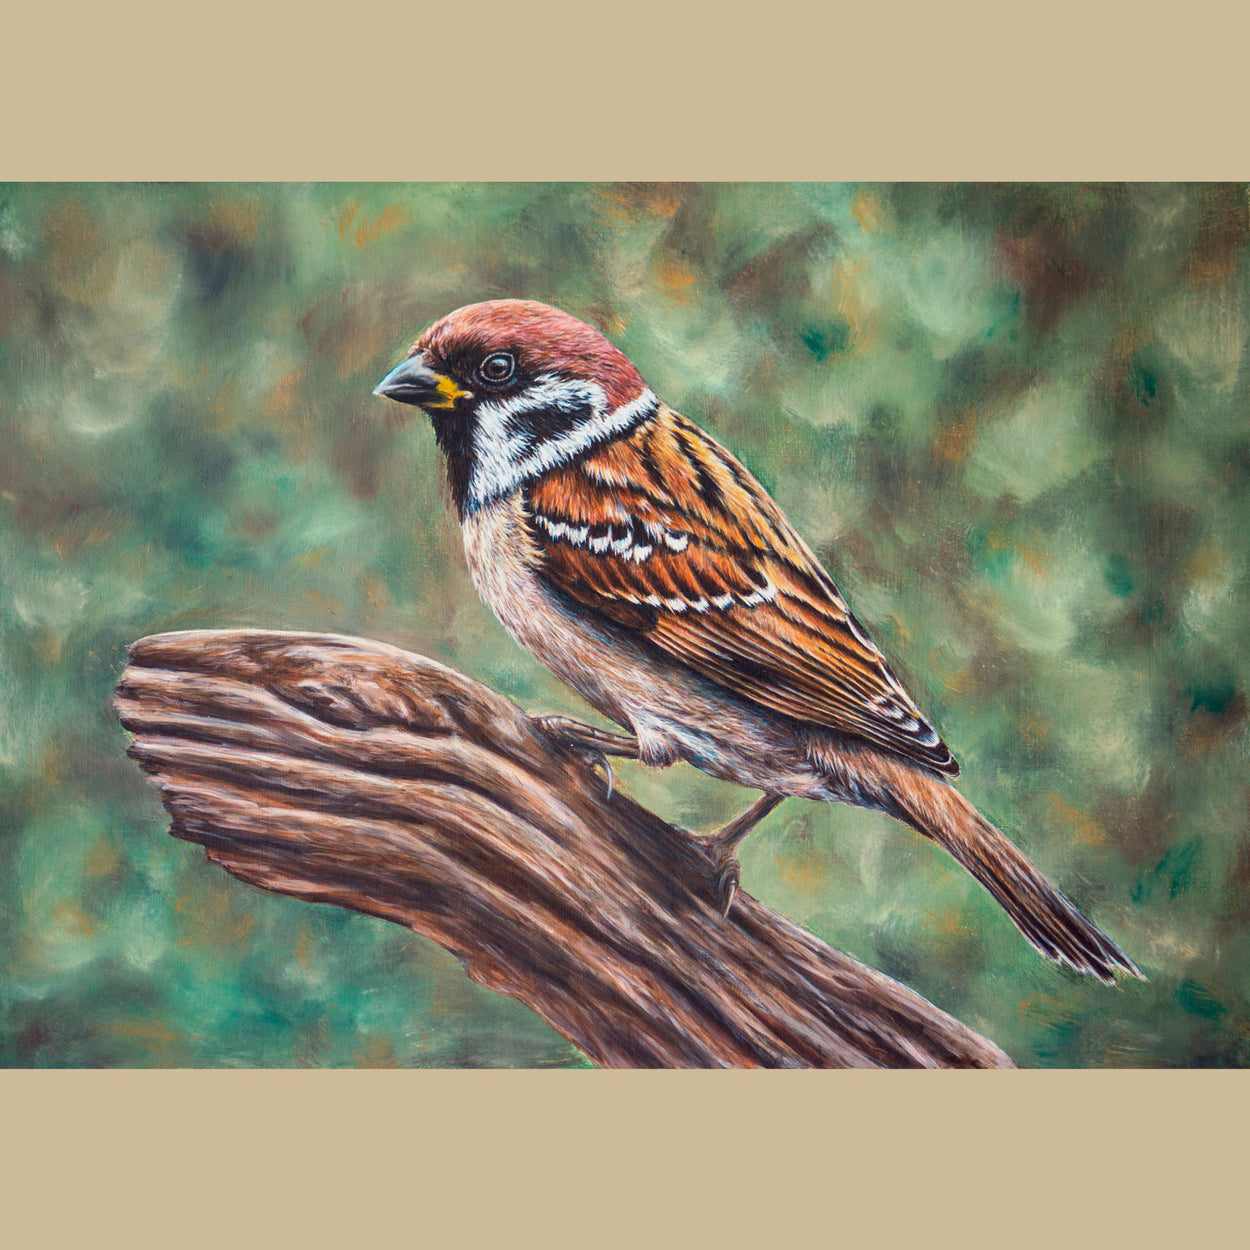 Tree Sparrow Original Painting - Passer Montanus - Jill Dimond - The Thriving Wild